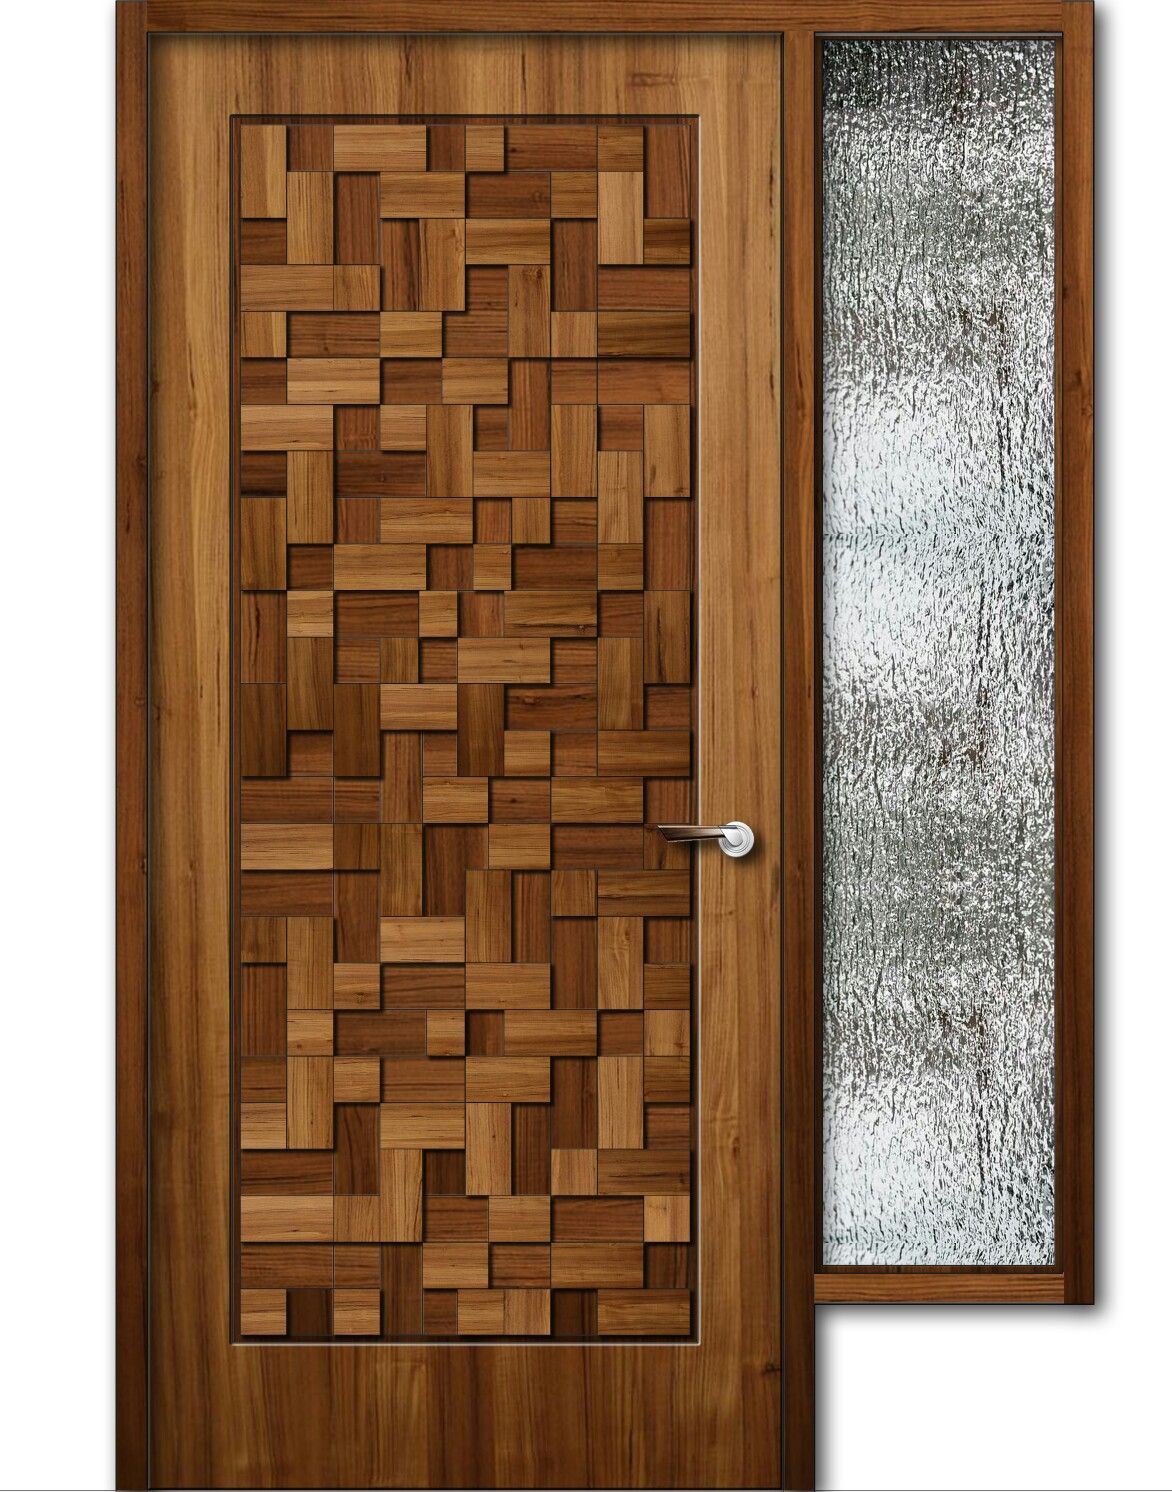 Teak Wood Finish Wooden Door With Window 8feet Height Double Door Design Front Door Design Wooden Main Door